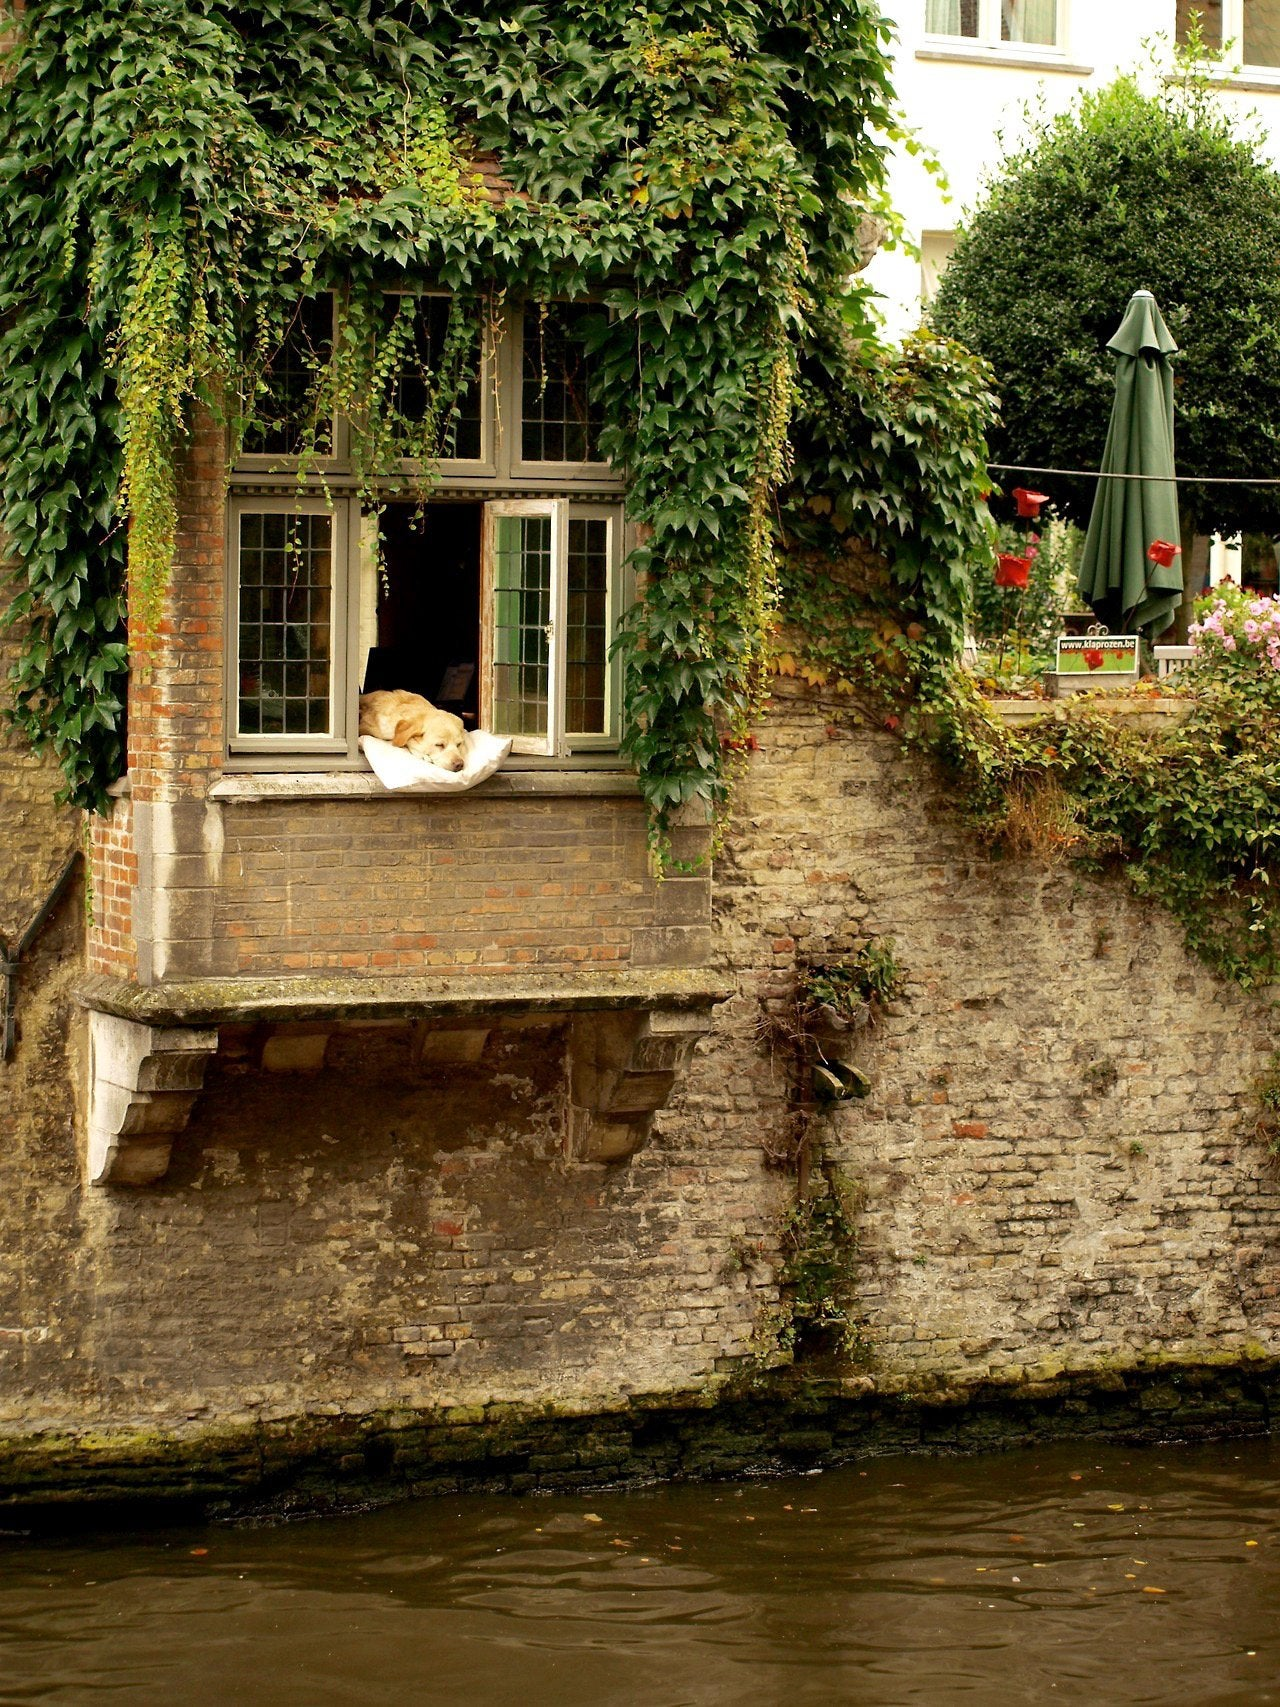 Dog sleeping at the window, over the river